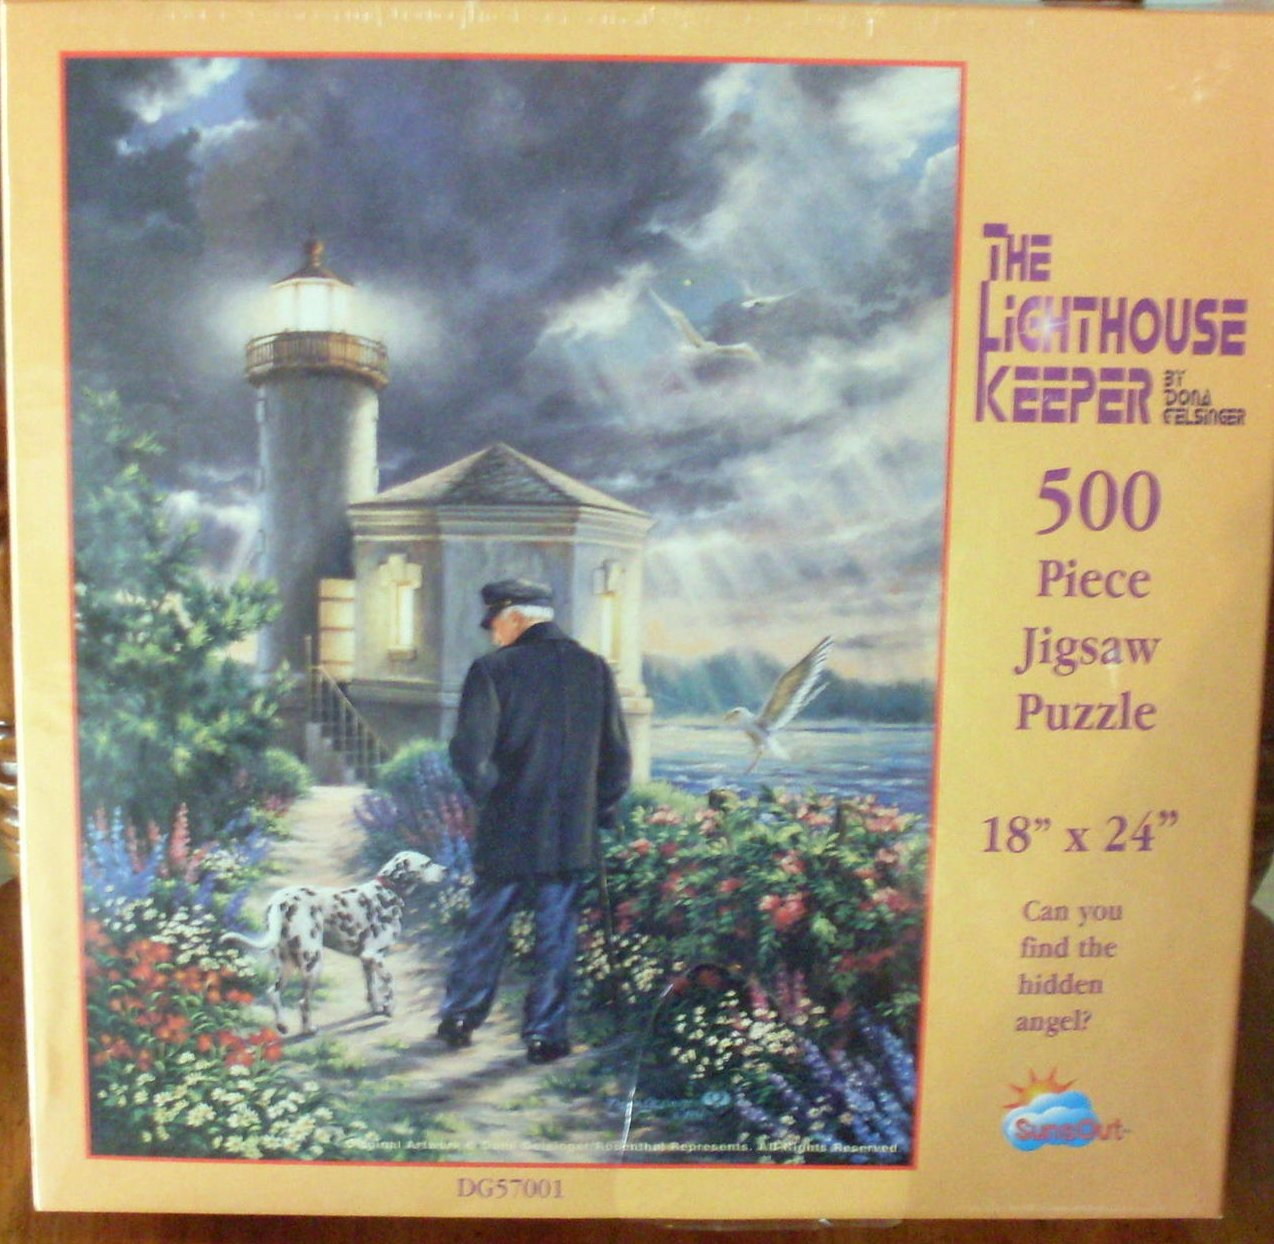 The Lighthouse Keeper 500 PC Dona Gelsinger Puzzle